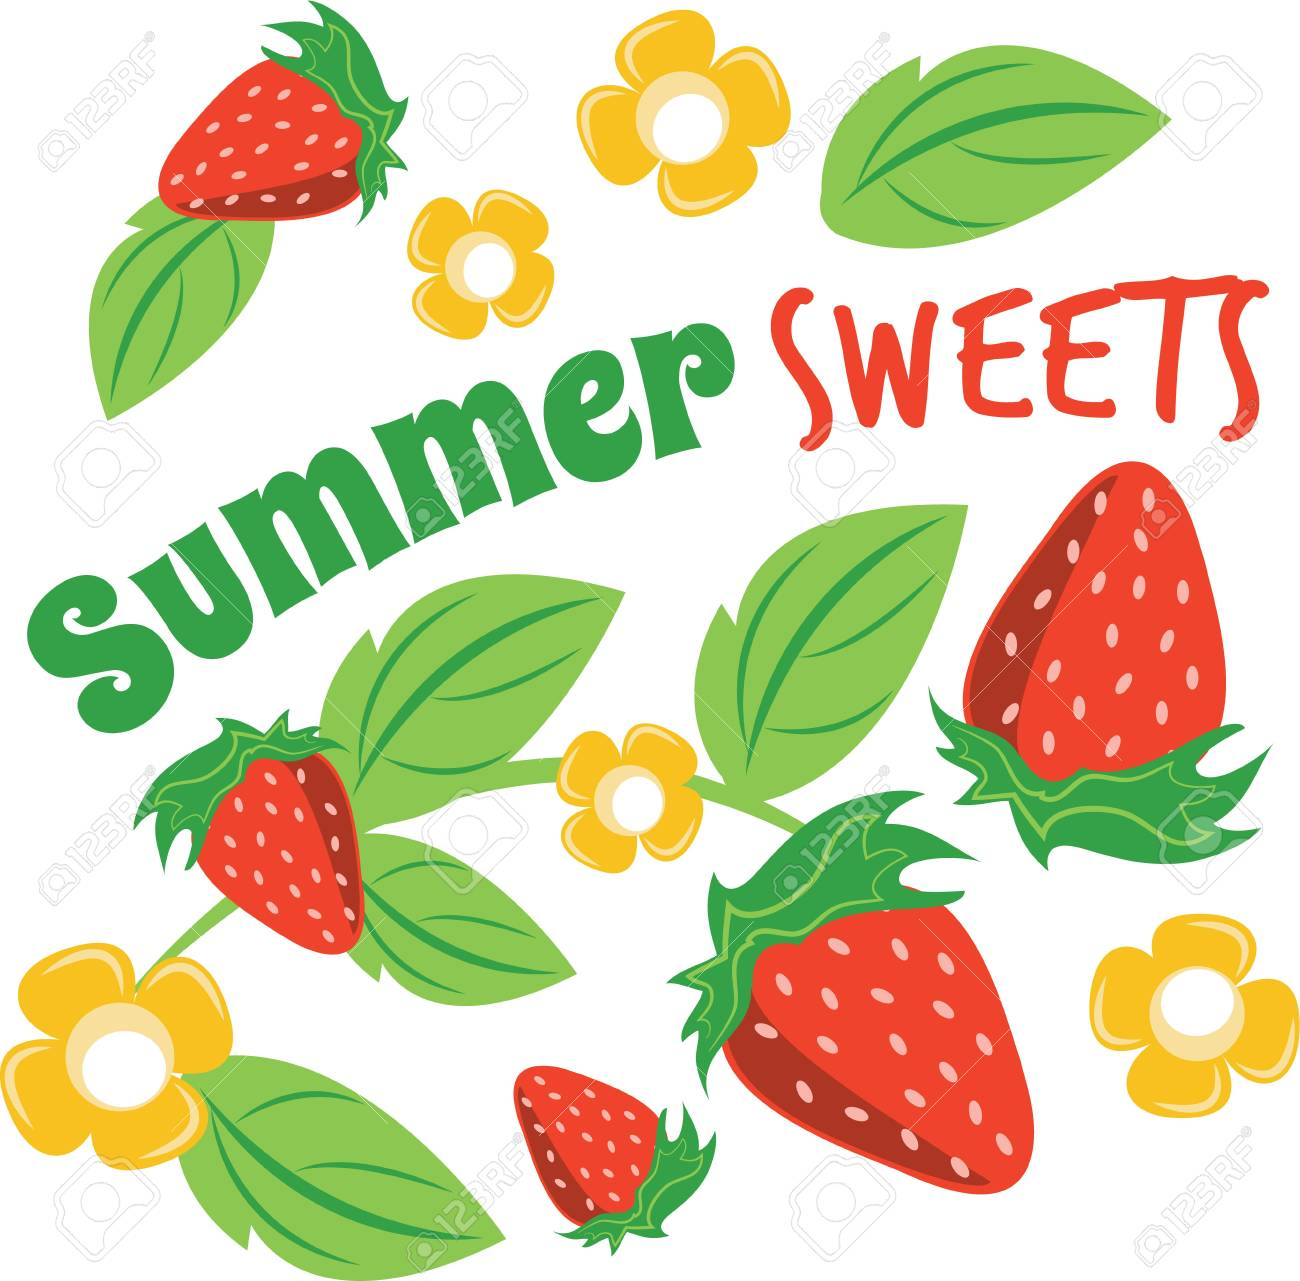 Enjoy Ripe Strawberries Vector - Little screams summer quite like the sweet scent and ripe taste of fresh, plump strawberries. Enjoy the harvest with this design on cozies, ...